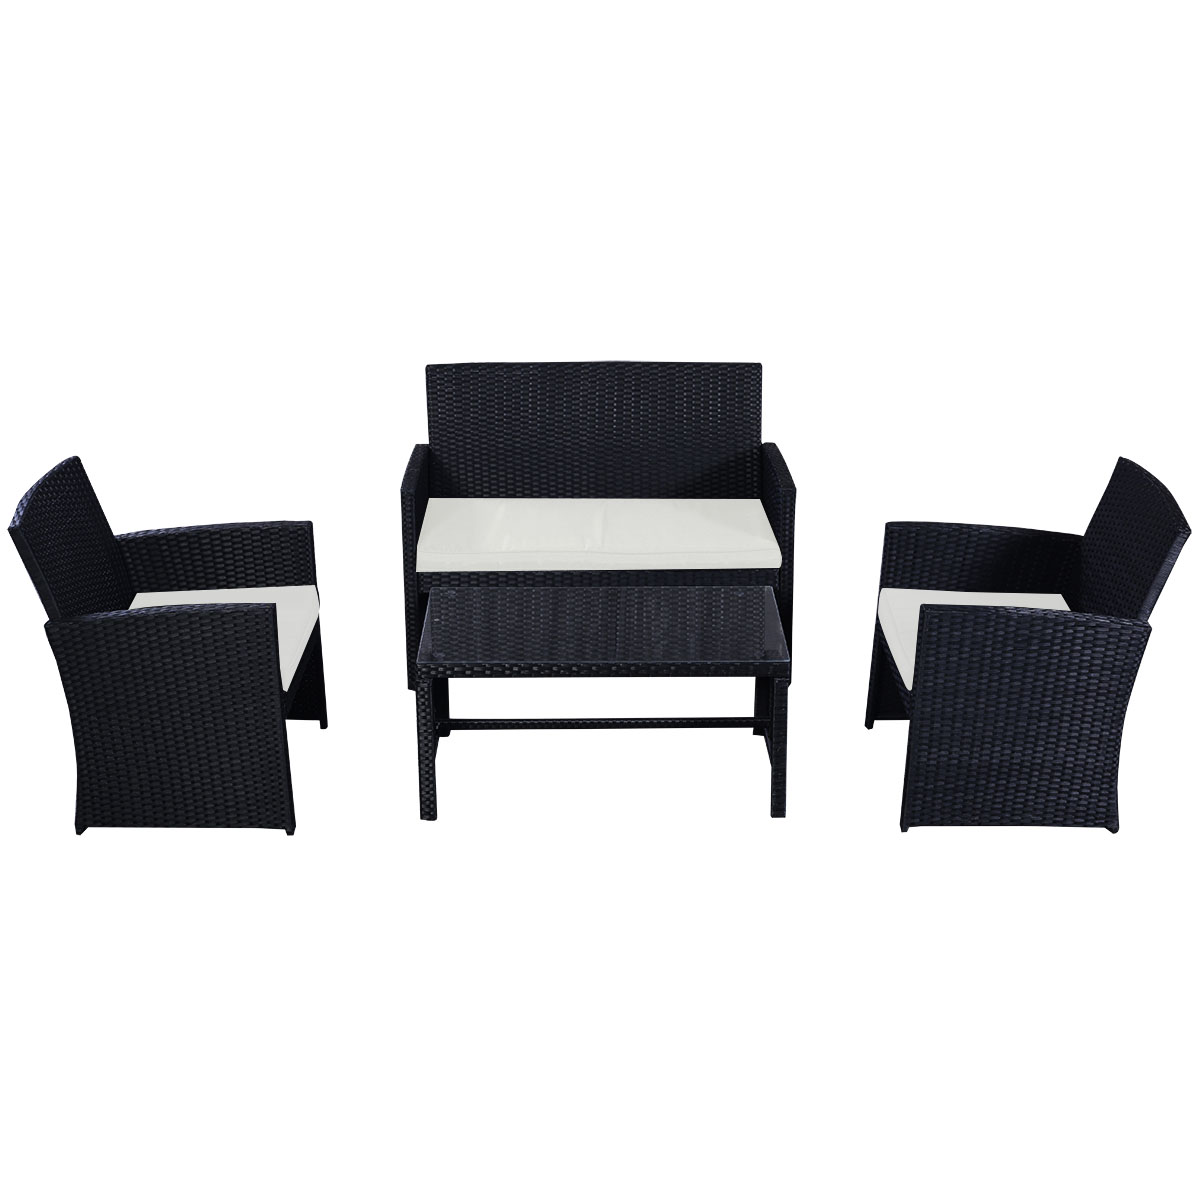 black rattan sofa rattan effect 3 seater mini corner sofa. Black Bedroom Furniture Sets. Home Design Ideas